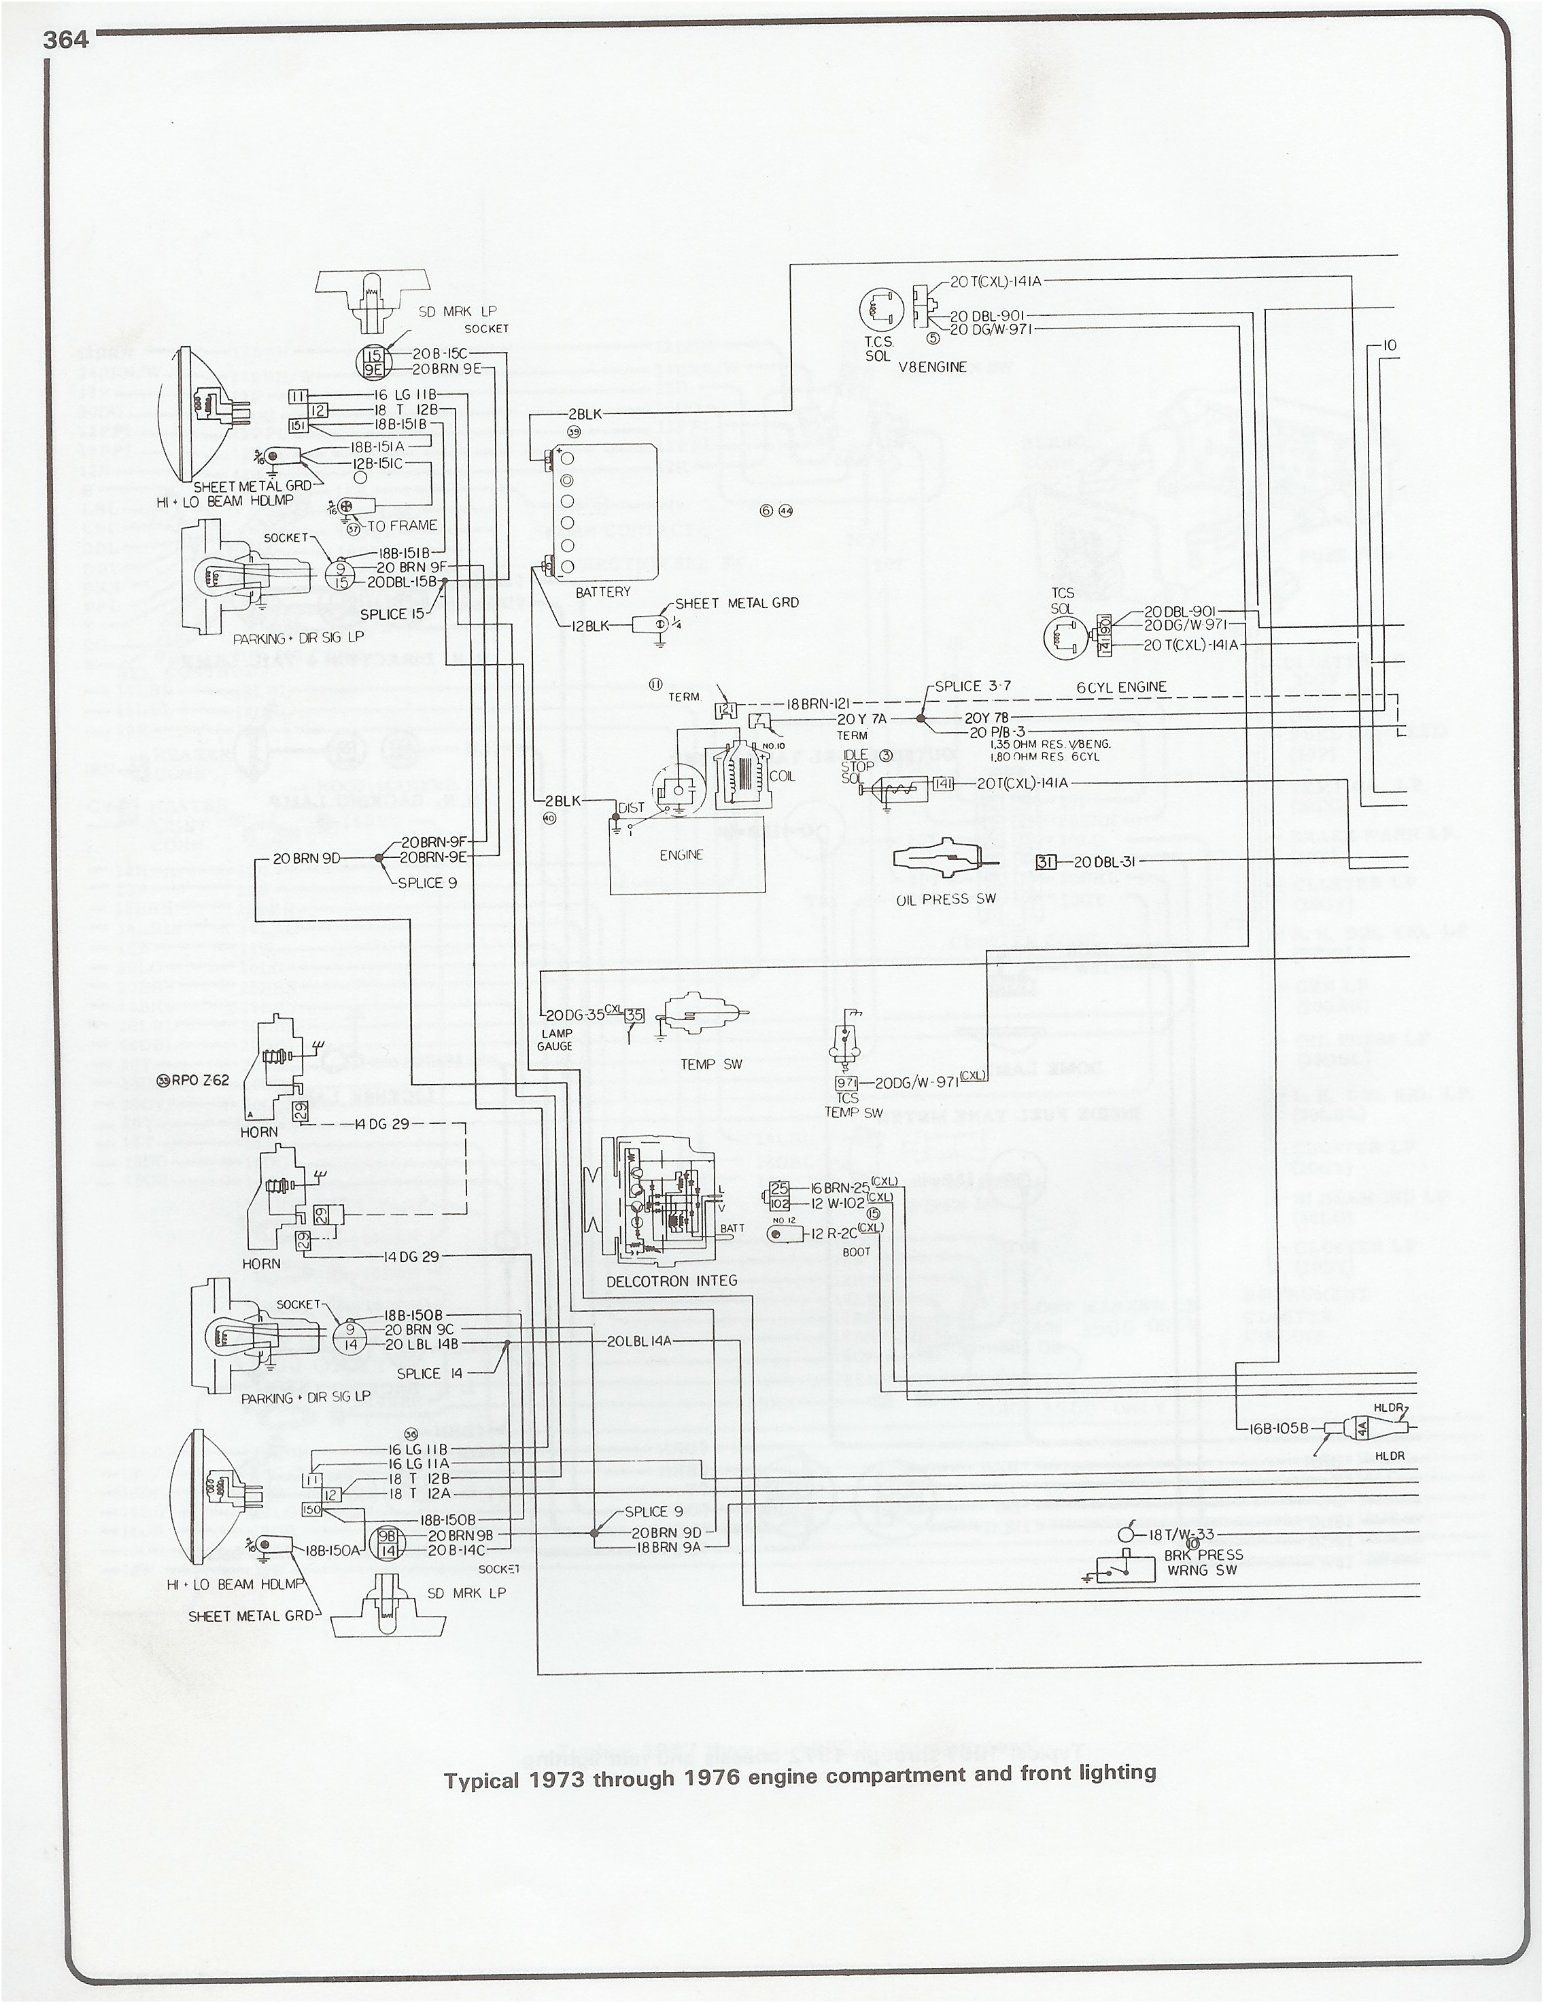 medium resolution of wiring diagram 1973 1976 chevy pickup chevy wiring diagram chevy truck gauge cluster wiring harness as well 1976 camaro wiring